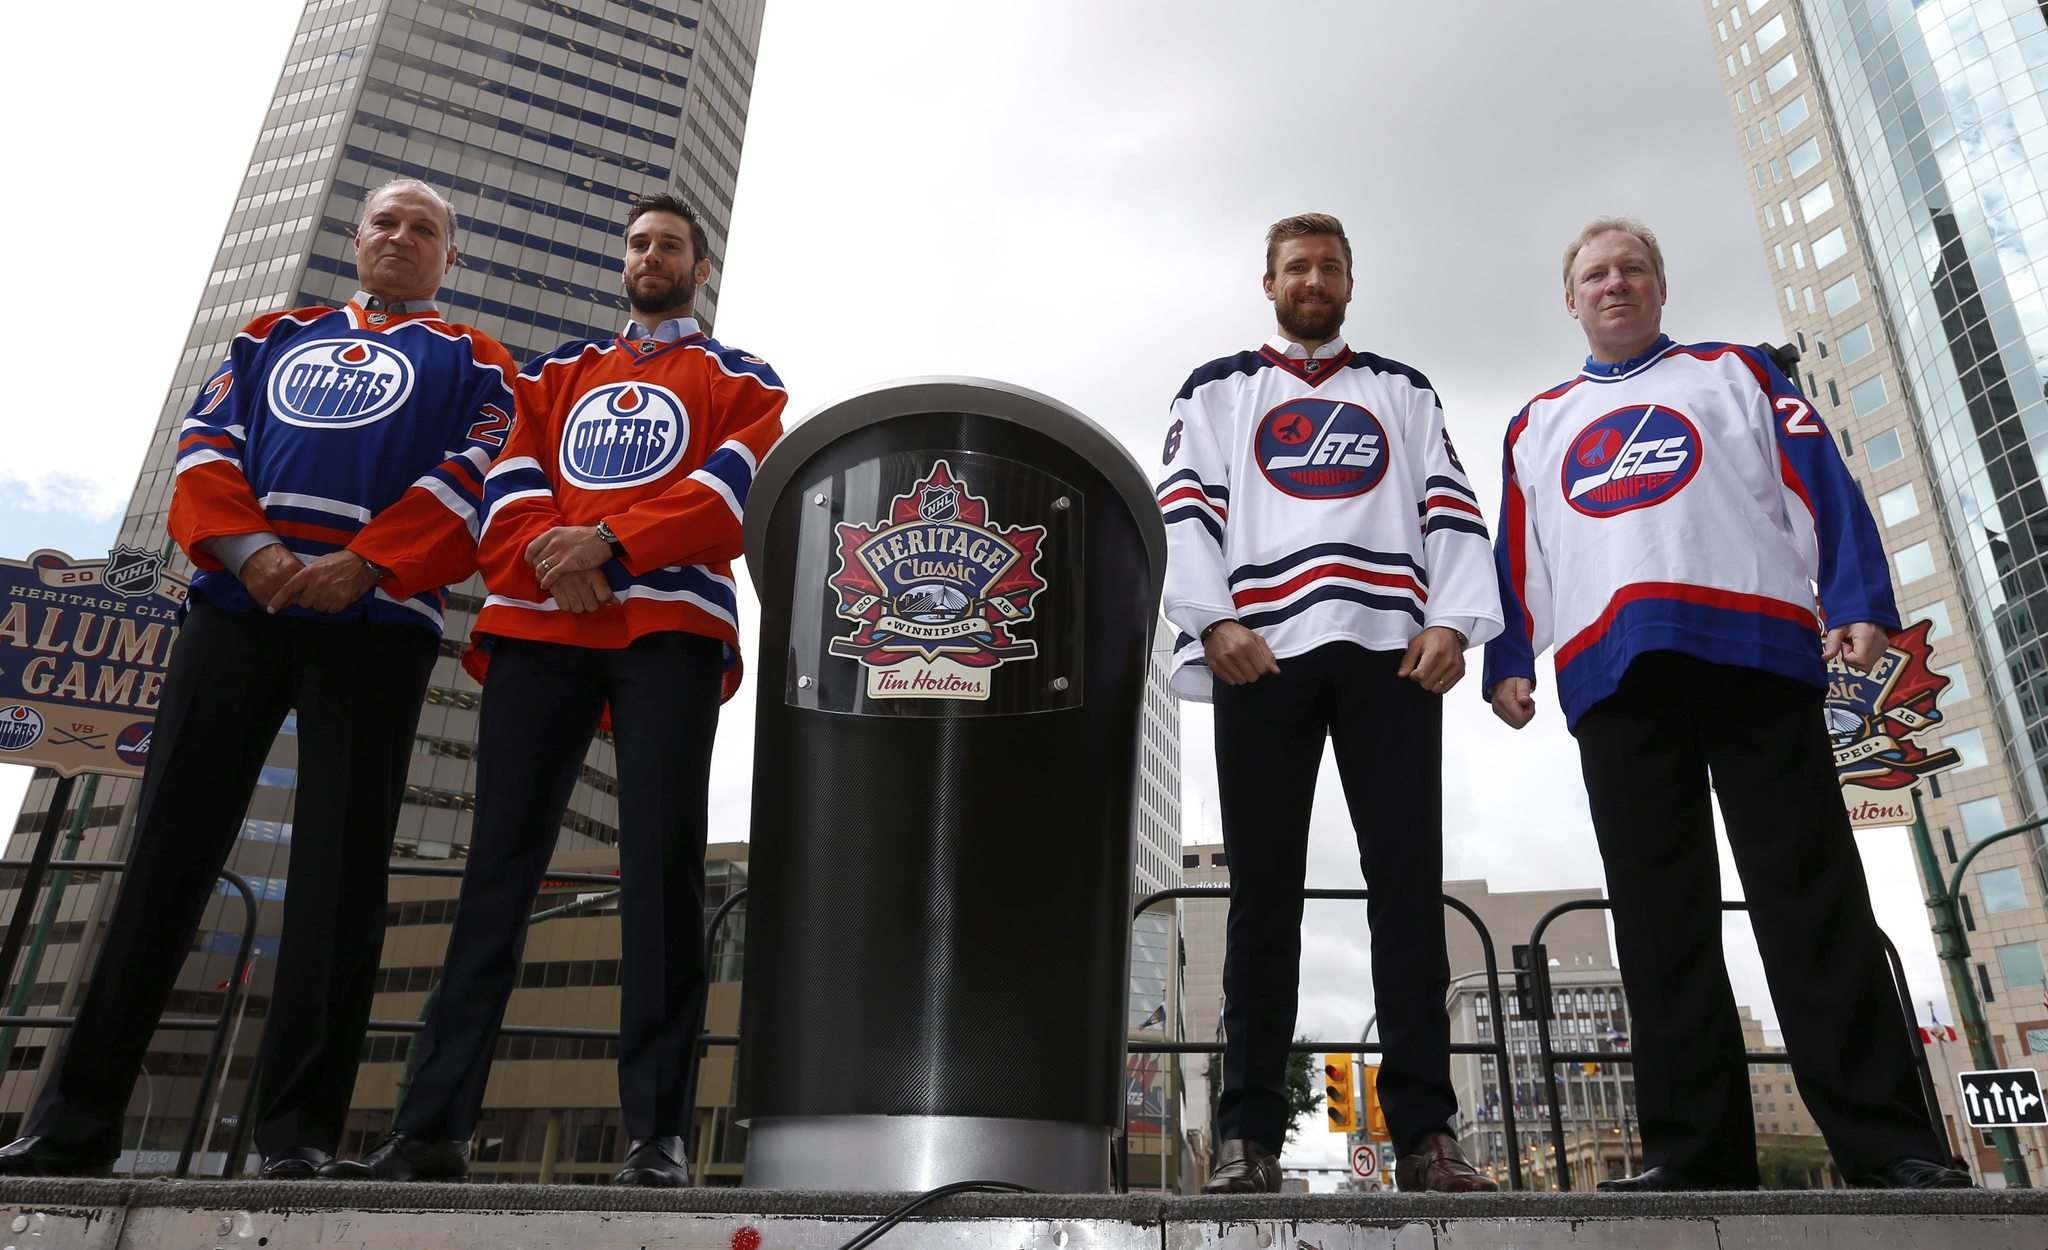 Players abuzz over Heritage Classic - Winnipeg Free Press 6111e3ac9